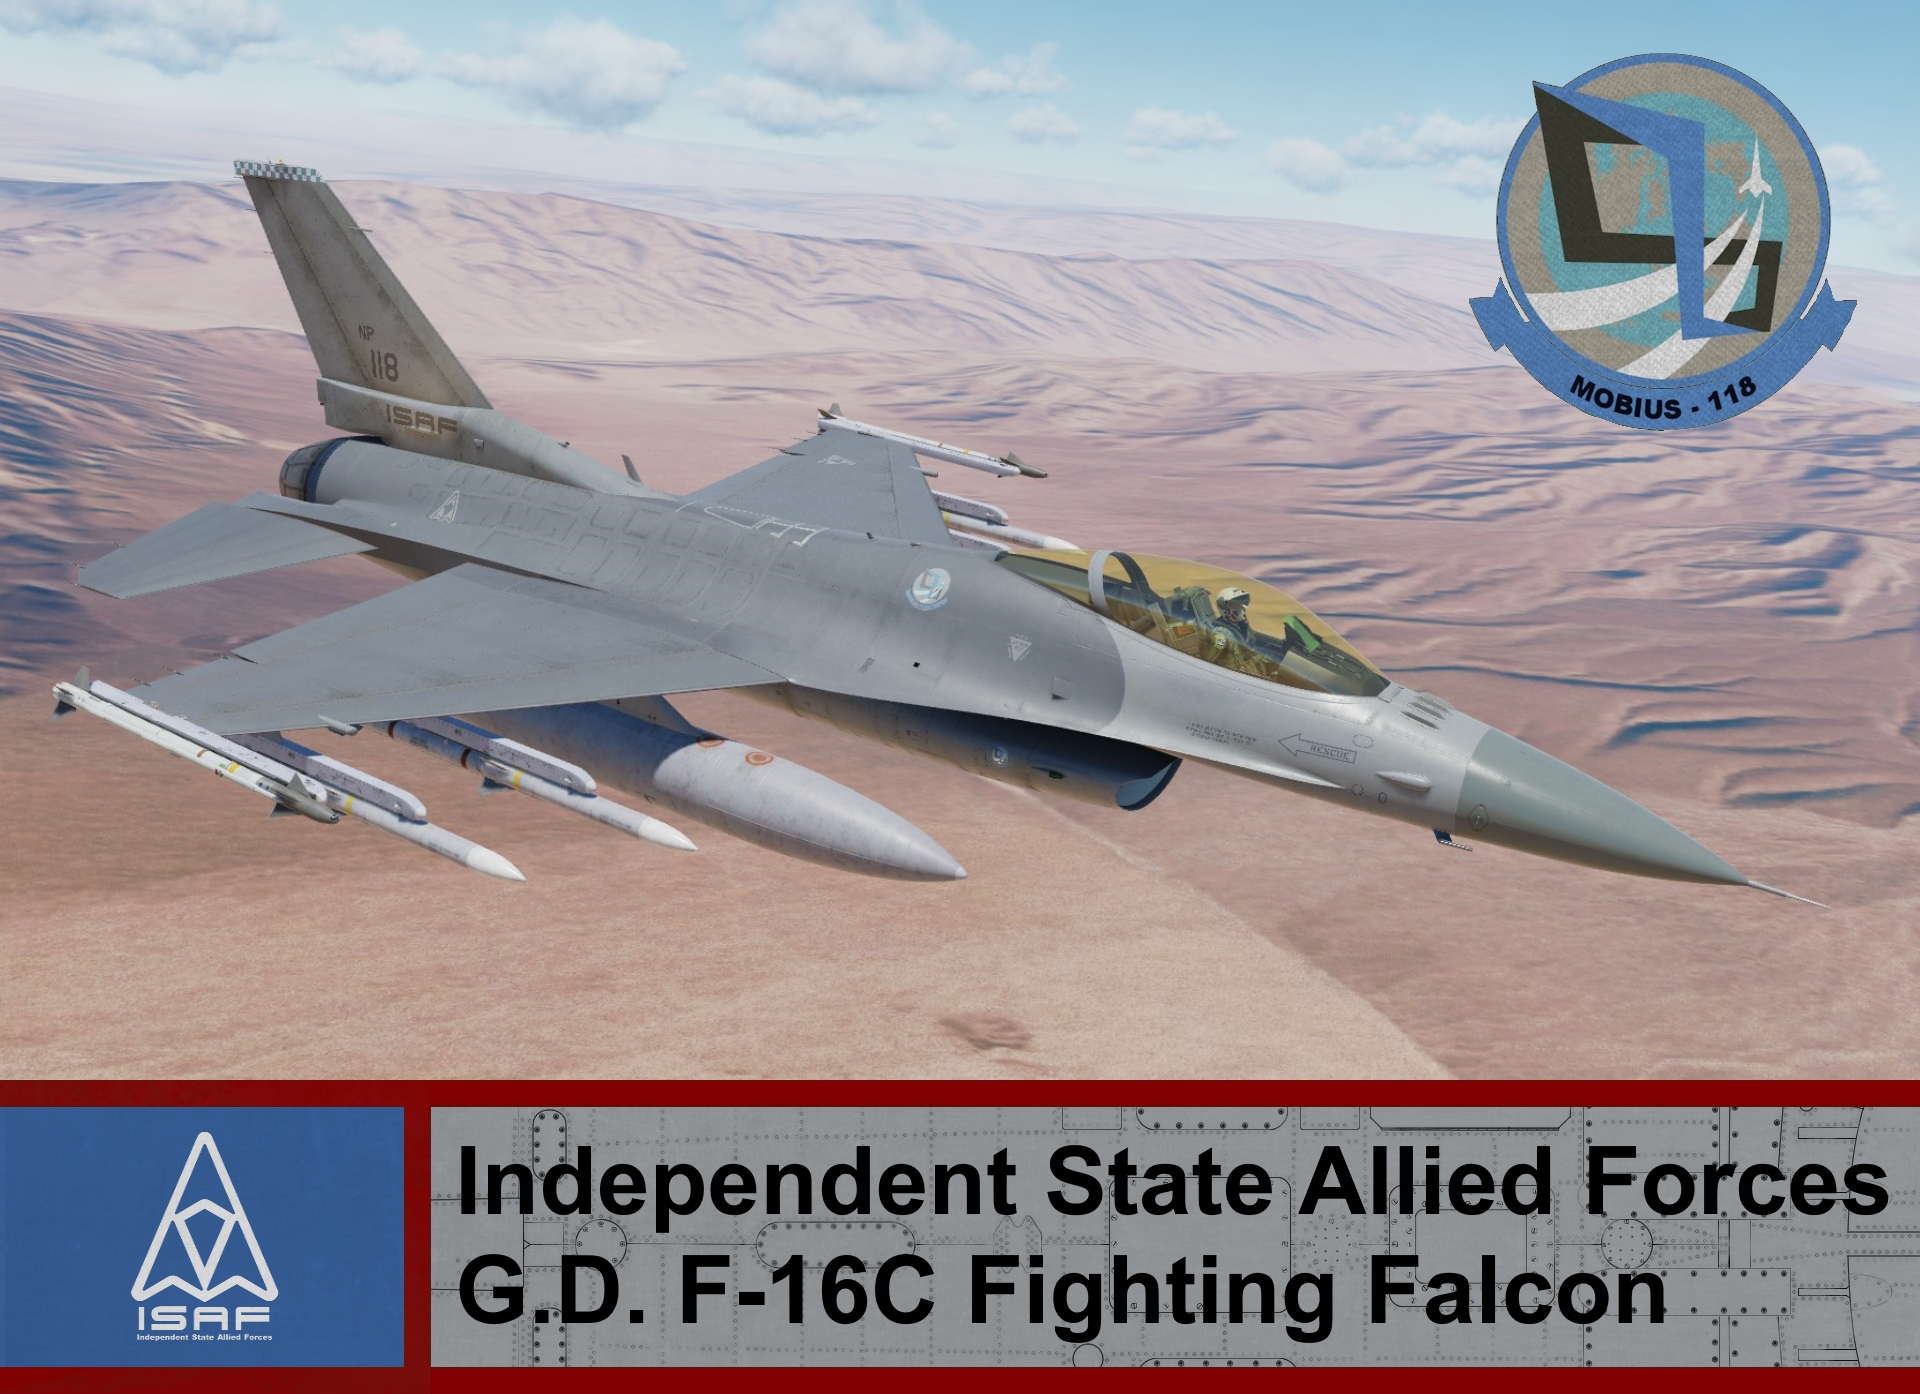 Independent State Allied Forces F-16C Block 50 - Ace Combat 4 (Mobius One) *UPDATED*